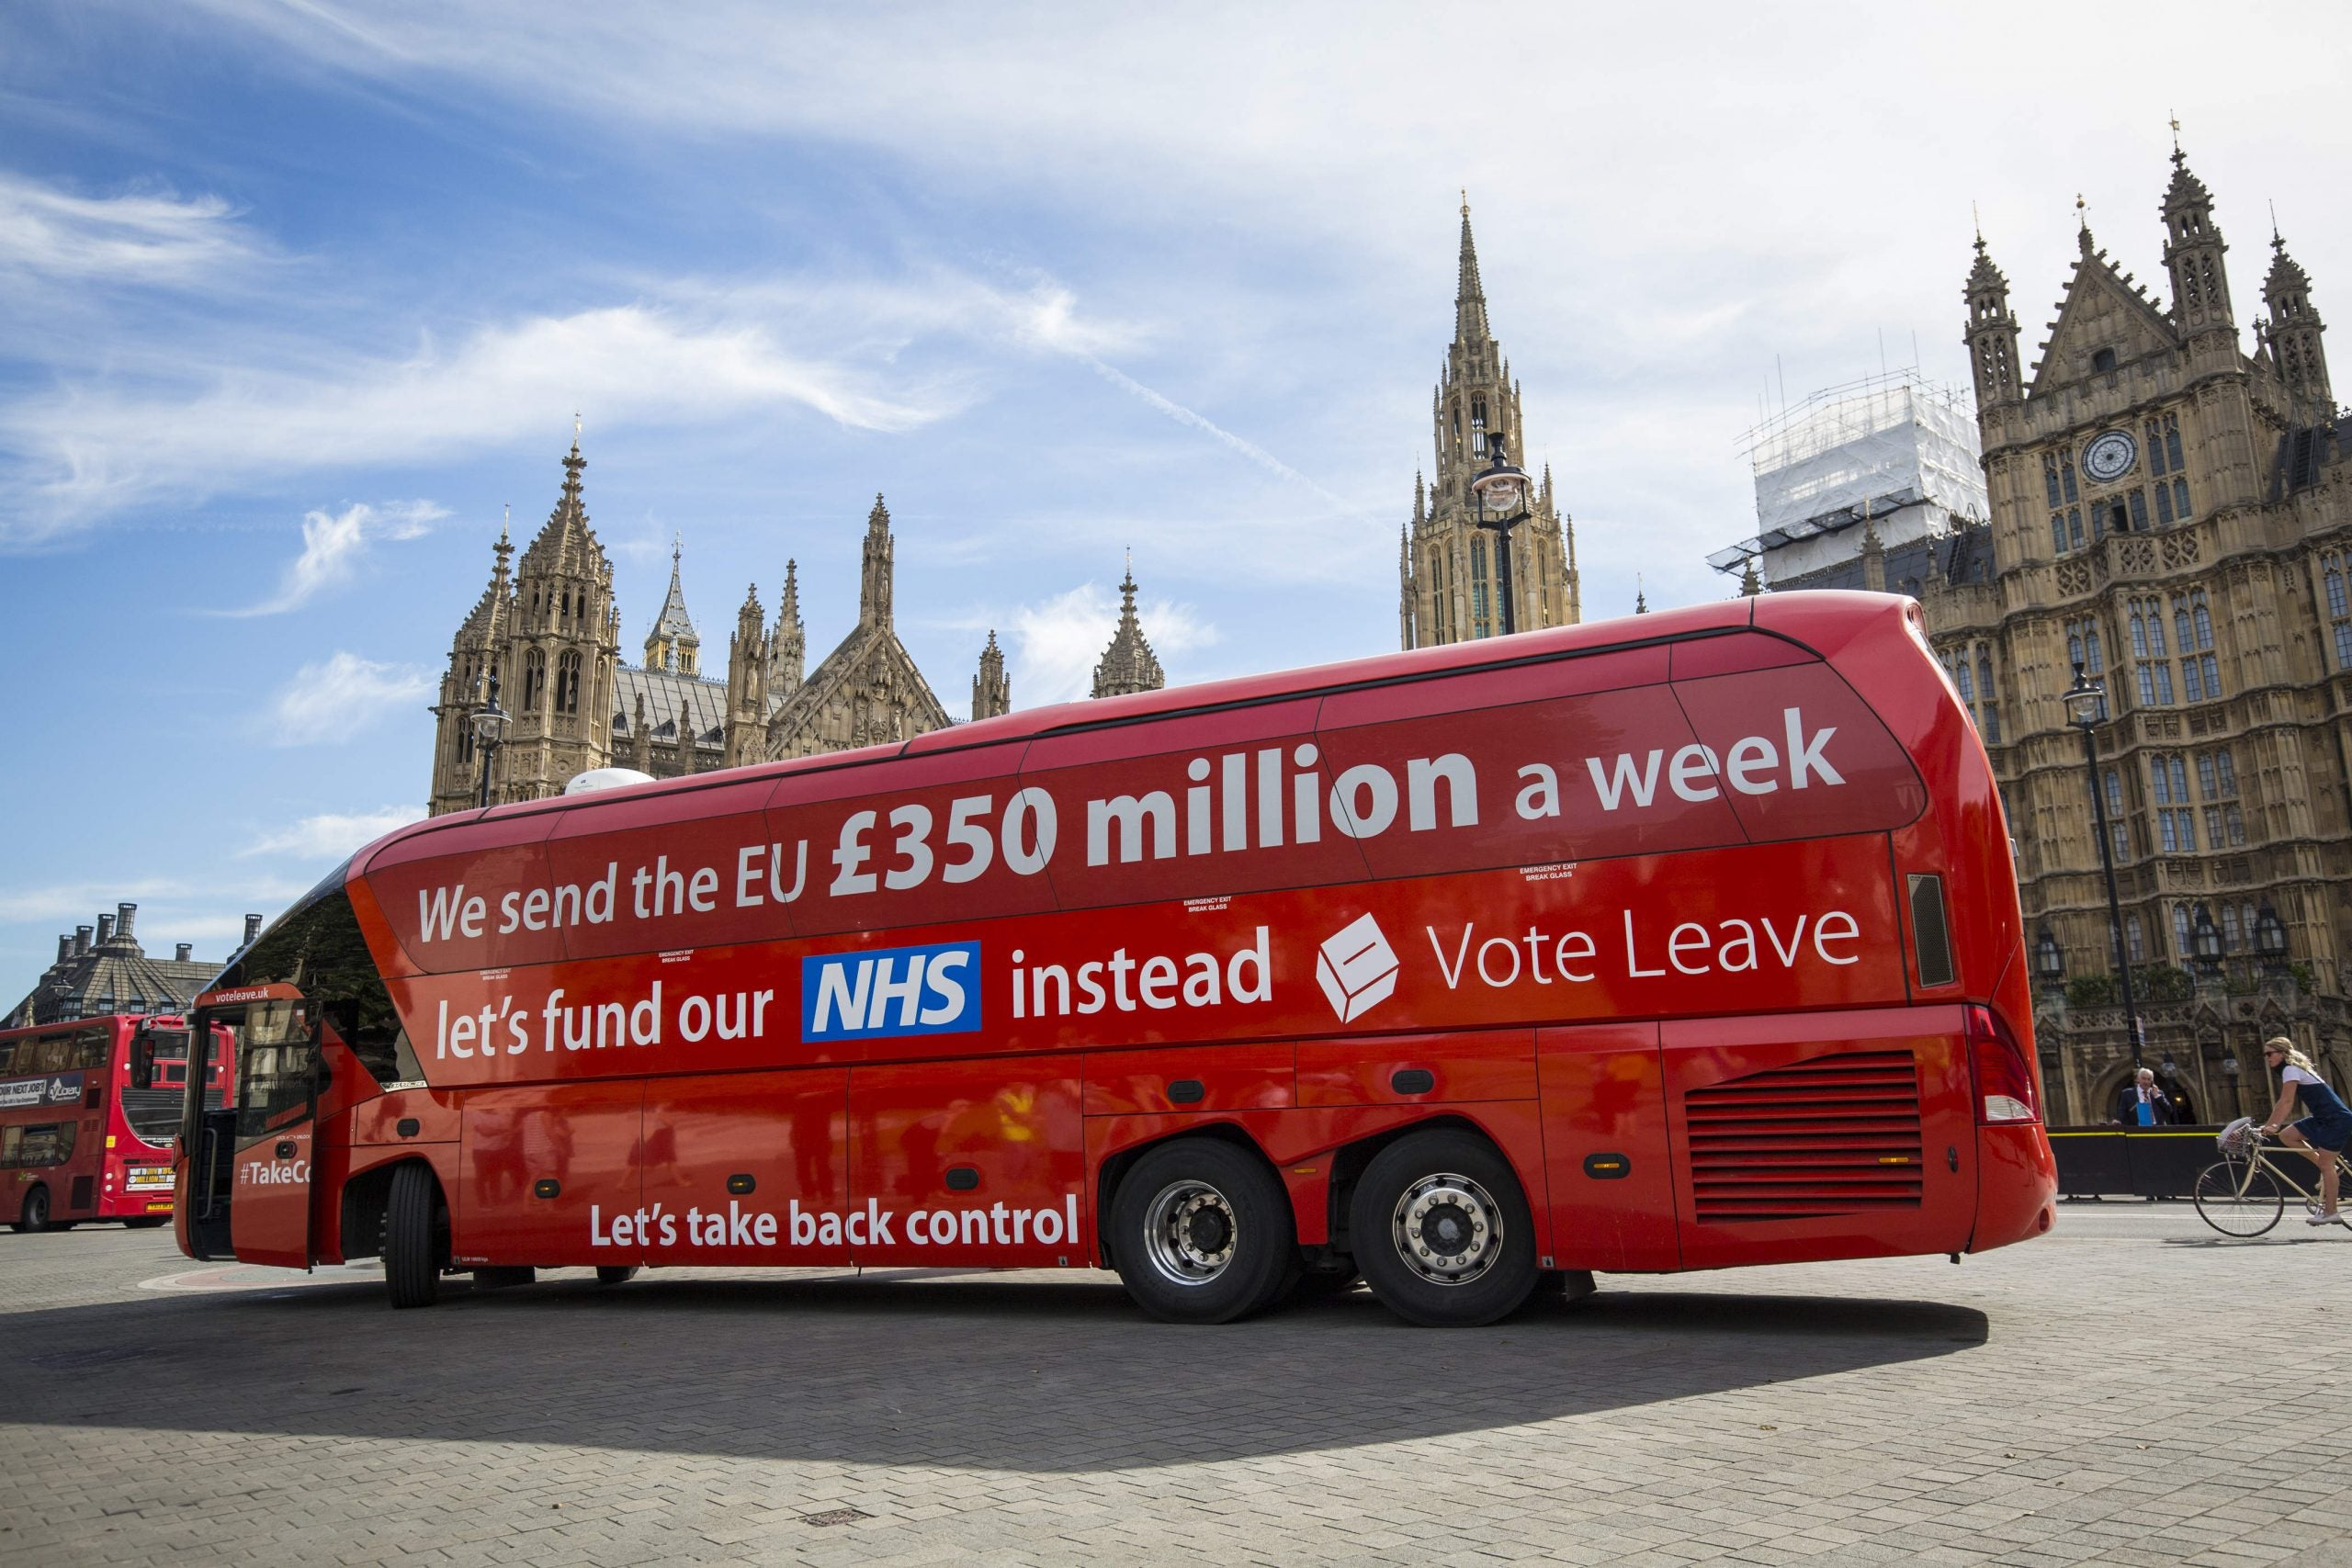 It's official – there's a £200m hole in the Brexit bus NHS promise